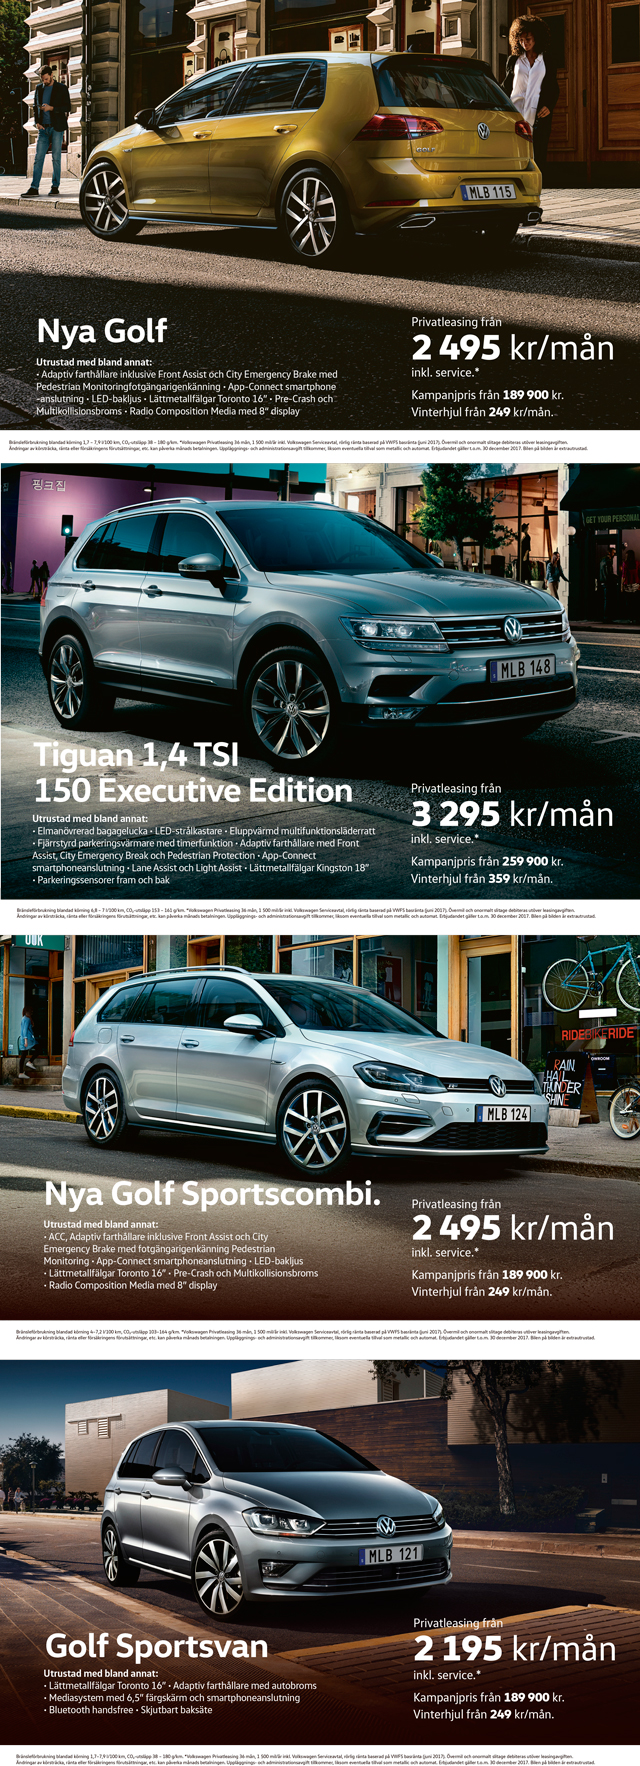 privatleasing-nya-golf-nya-polo-tiguan-nya-golf-sportscombi-golf-sportvan